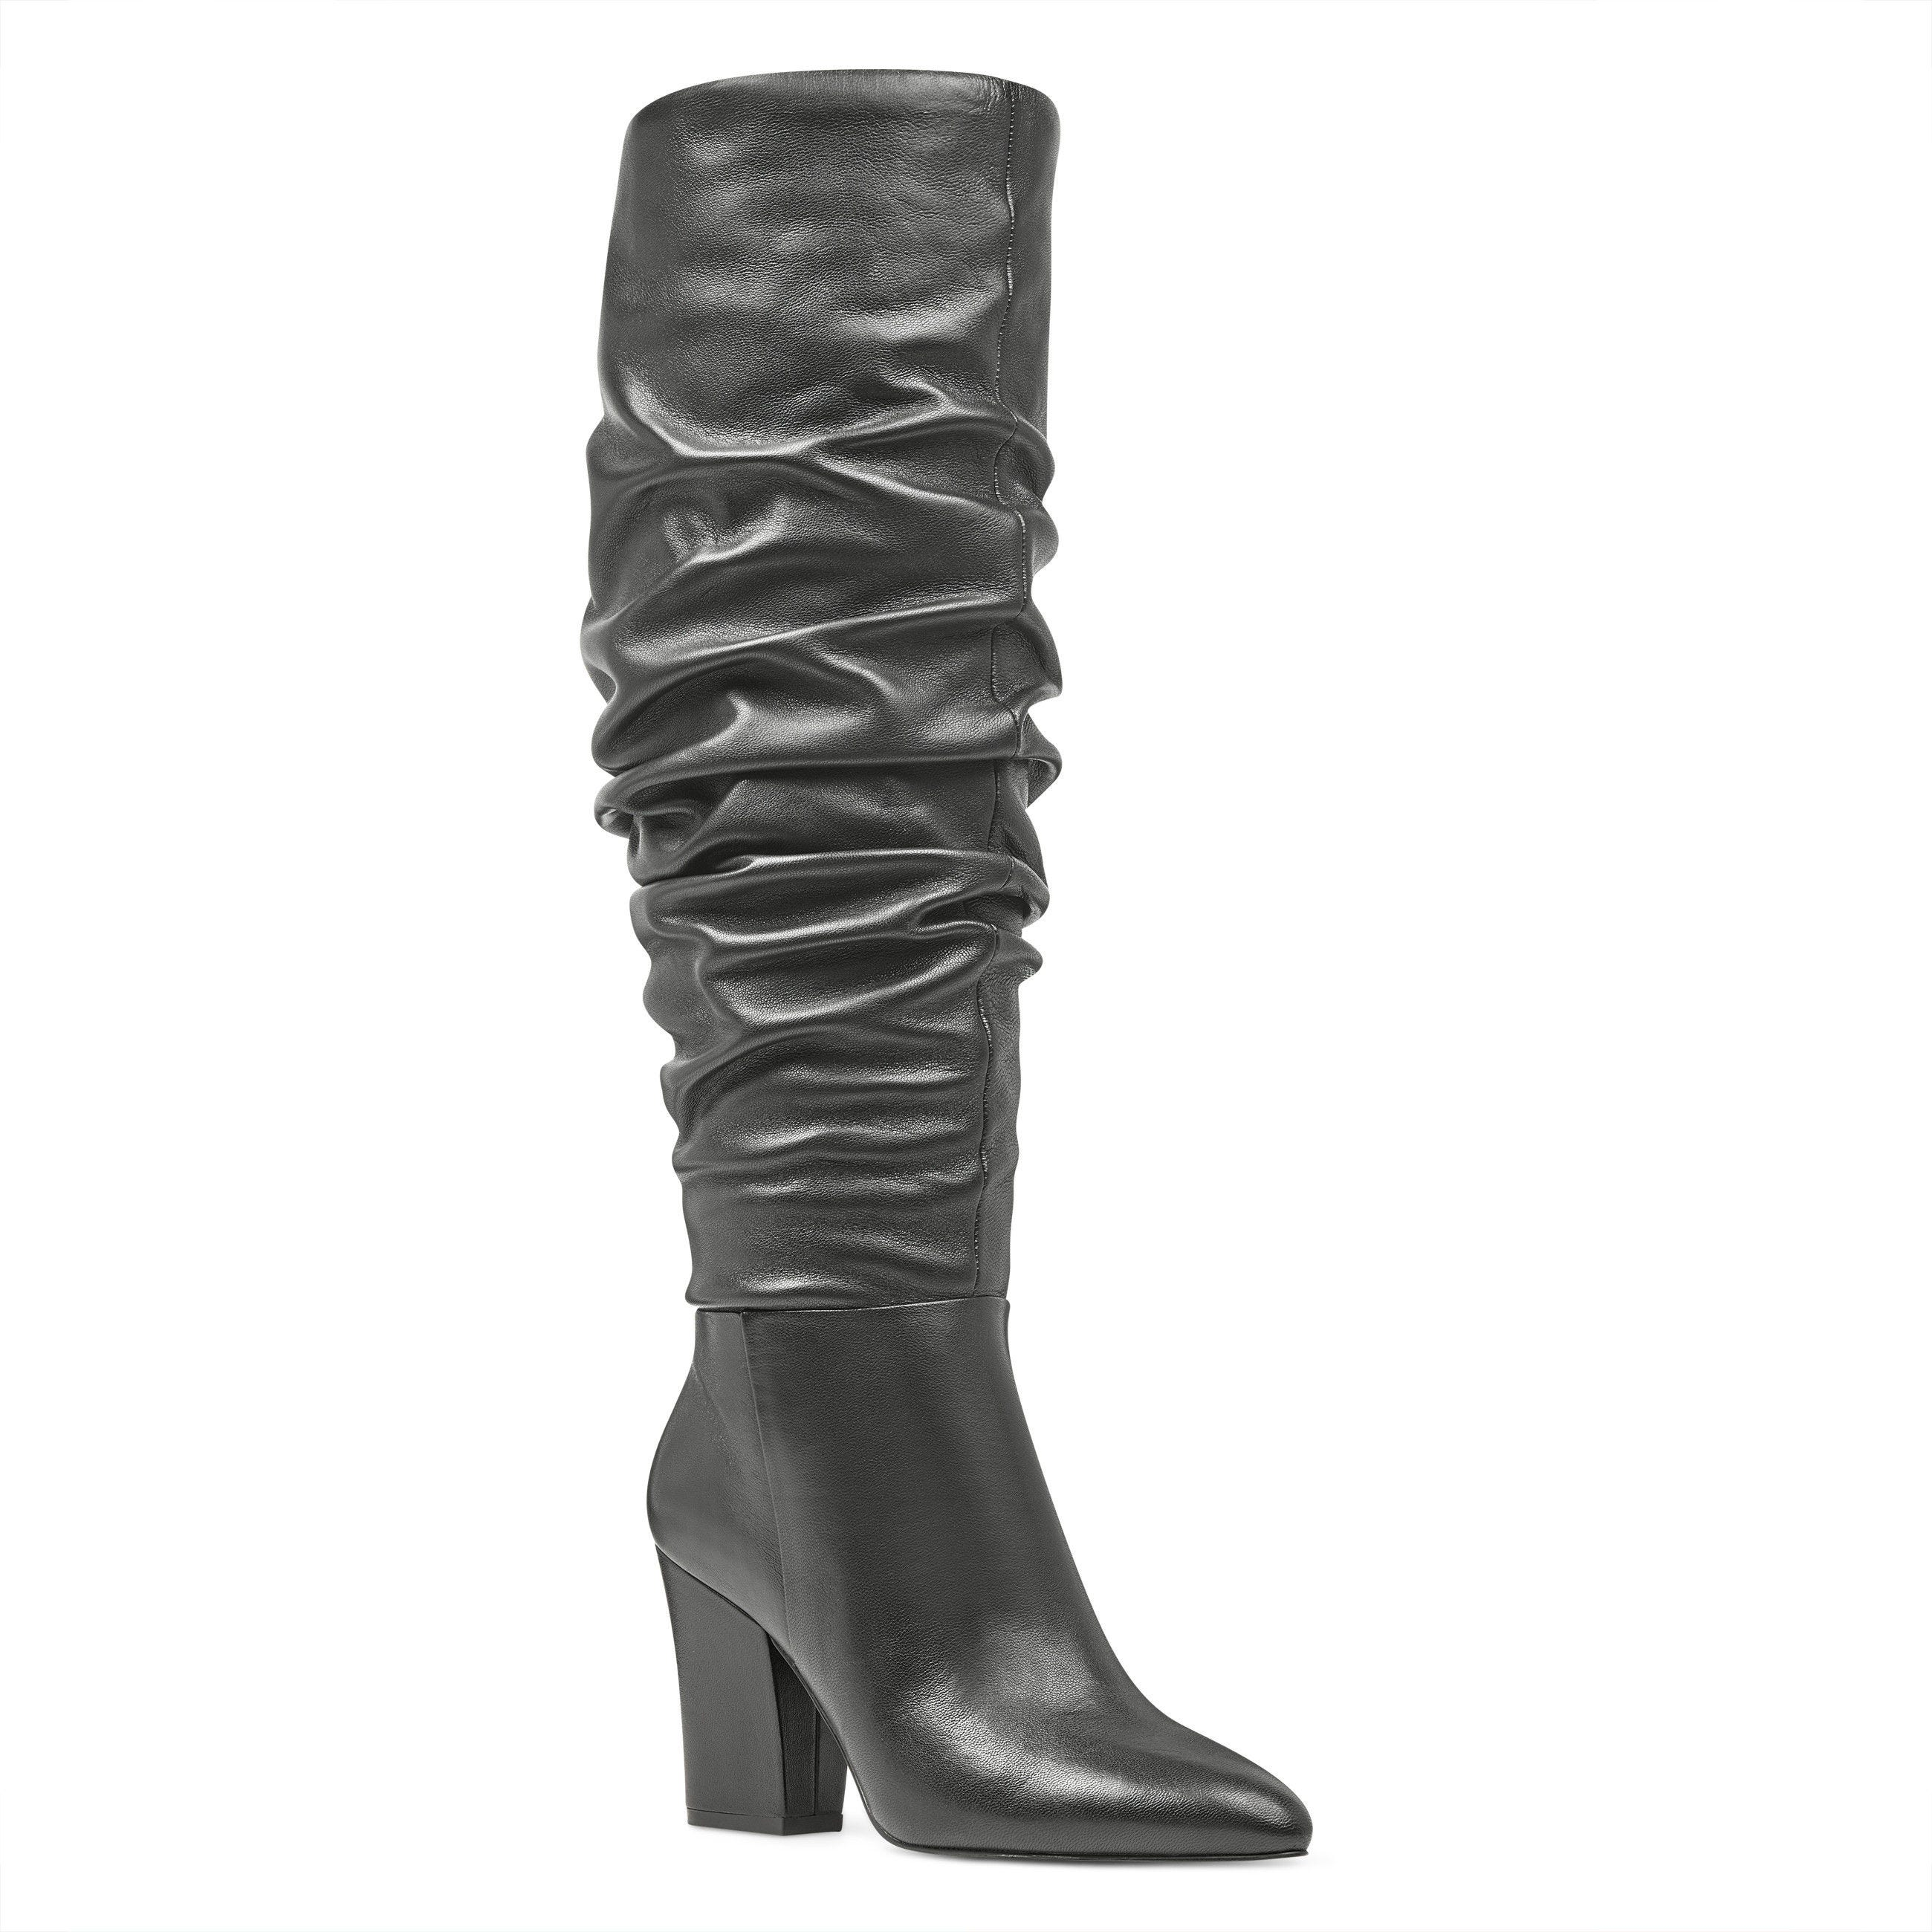 8483ae47546 Scastien Slouchy Boots